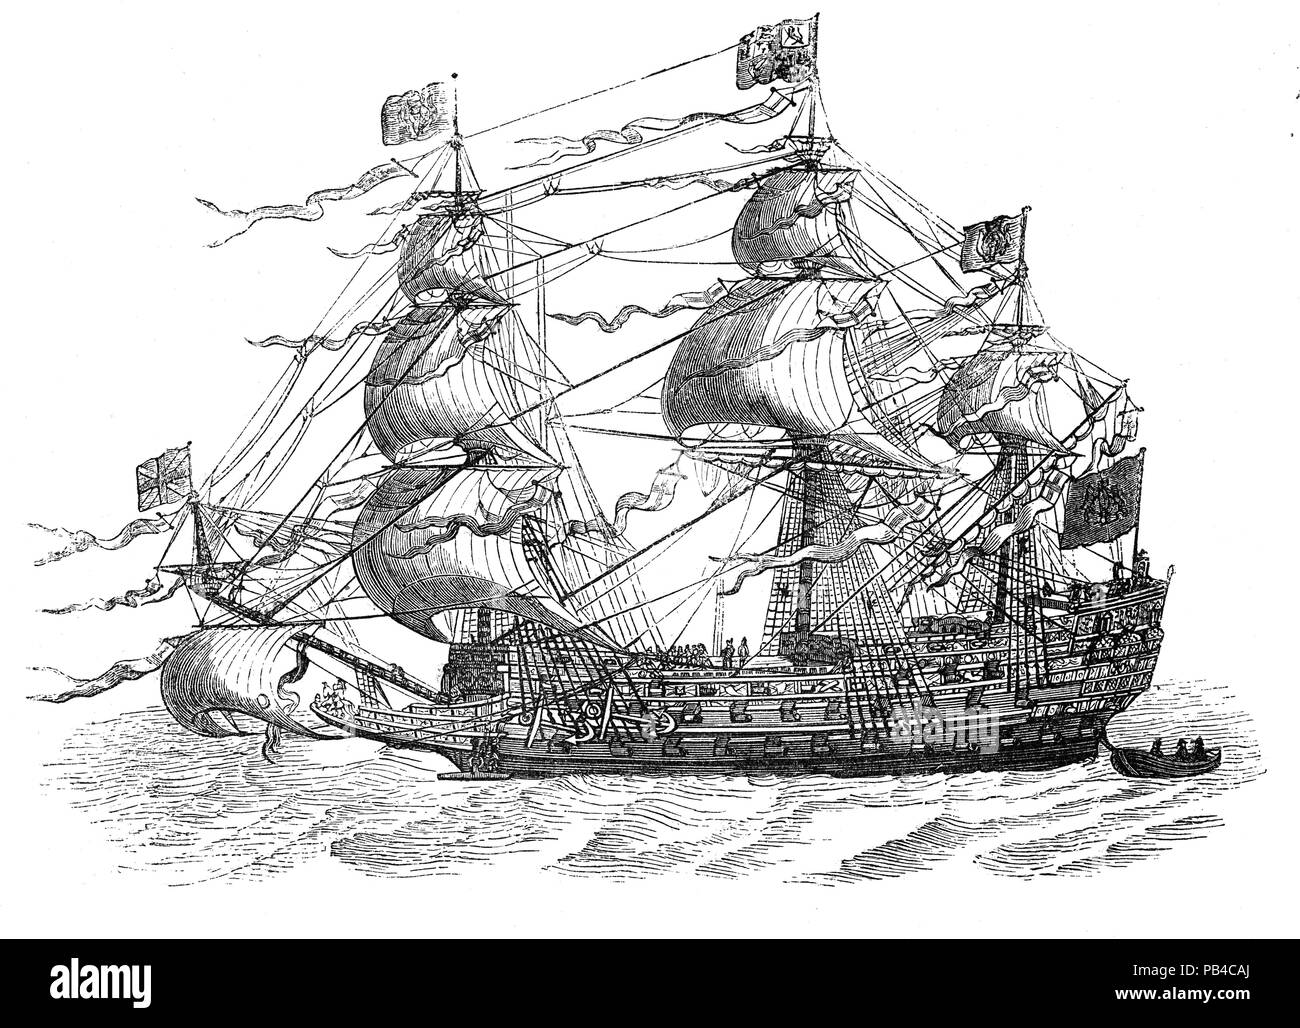 Sovereign of the Seas: Galleons were large, multi-decked sailing ships first used by the Spanish as armed cargo carriers and later adopted by other European states from the 16th to 18th centuries during the age of sail and were the principal fleet units drafted for use as warships until the Anglo-Dutch Wars of the mid-1600s. Galleons generally carried three or more masts with a lateen fore-and-aft rig on the rear masts, were carvel built with a prominent squared off raised stern, and used square-rigged sail plans on their fore-mast and main-masts. - Stock Image